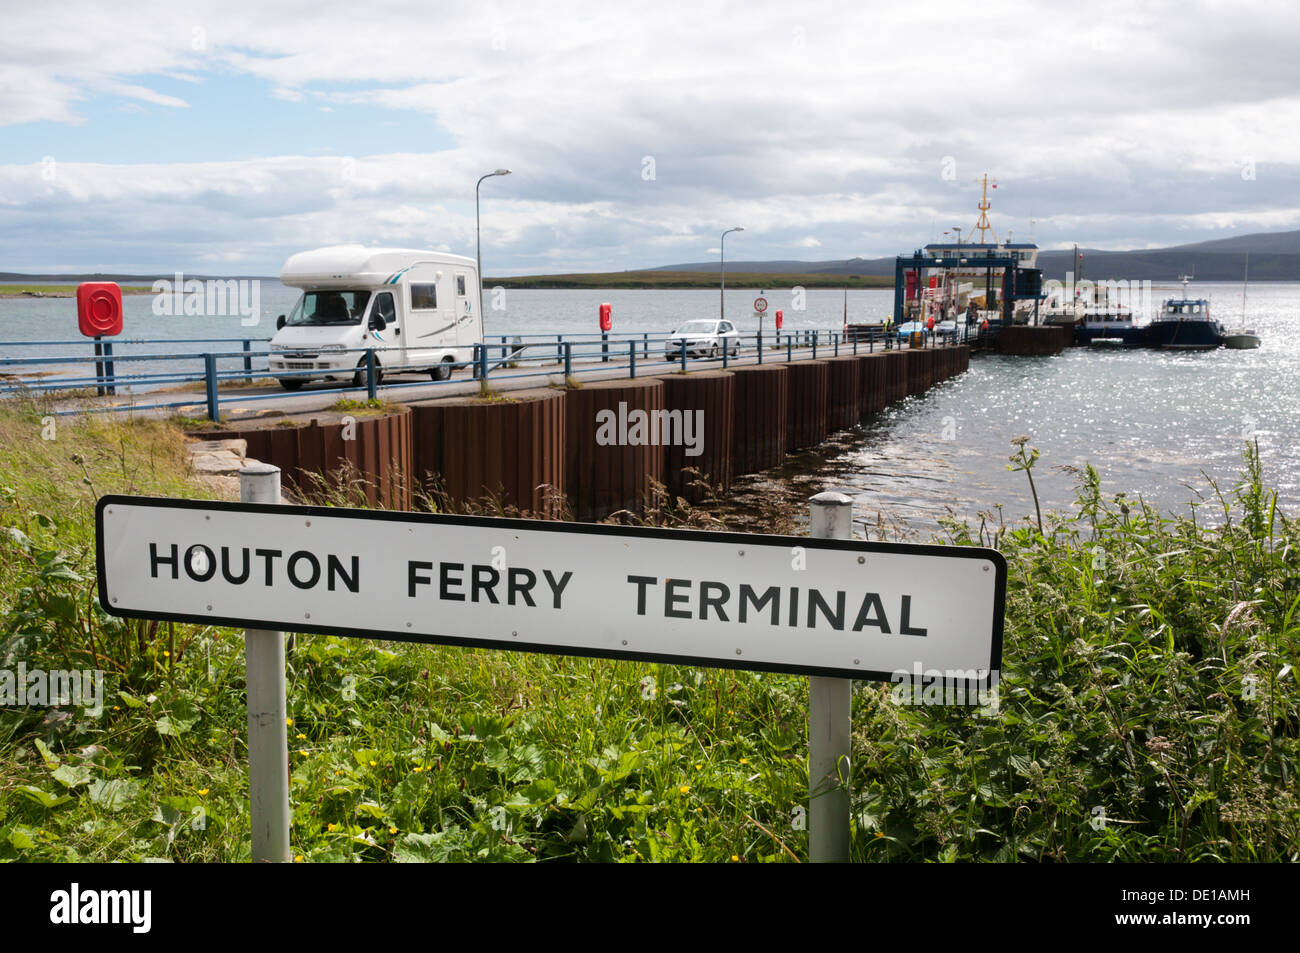 Sign for Houton Ferry Terminal on Orkney Mainland with vehicles, including a camper van, leaving ferry in background. Stock Photo